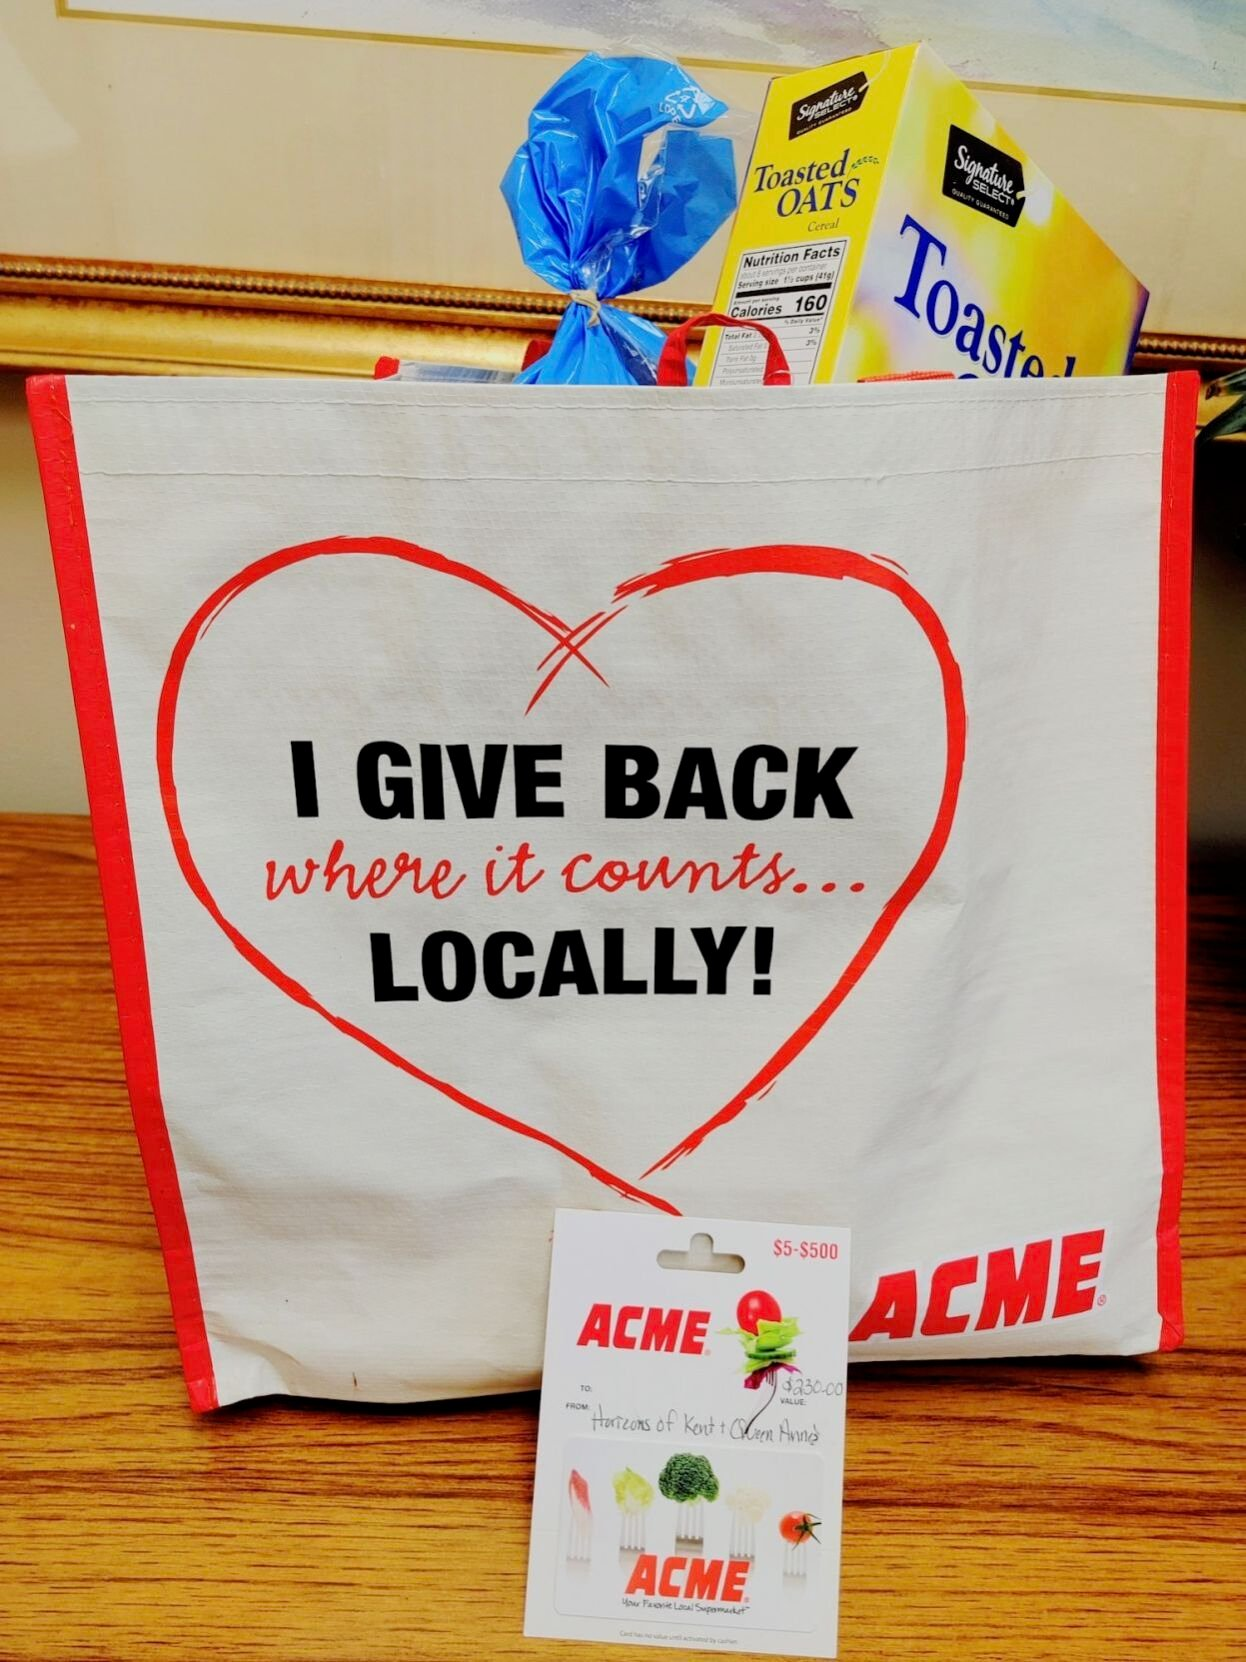 Acme supports Horizons with its Give Back Where It Counts program